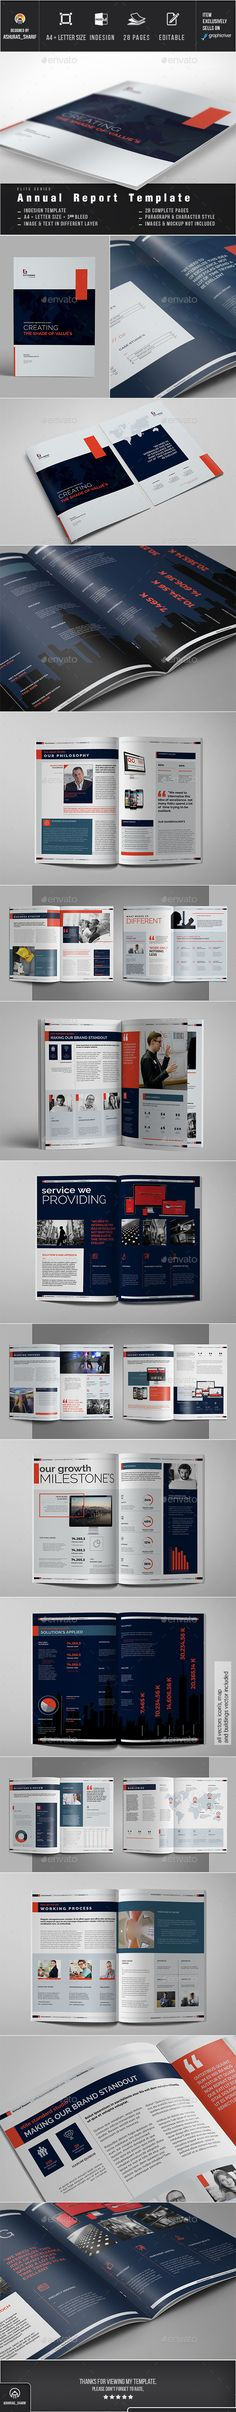 Annual Report - #Corporate #Brochures Download here: https://graphicriver.net/item/annual-report/18337317?ref=alena994